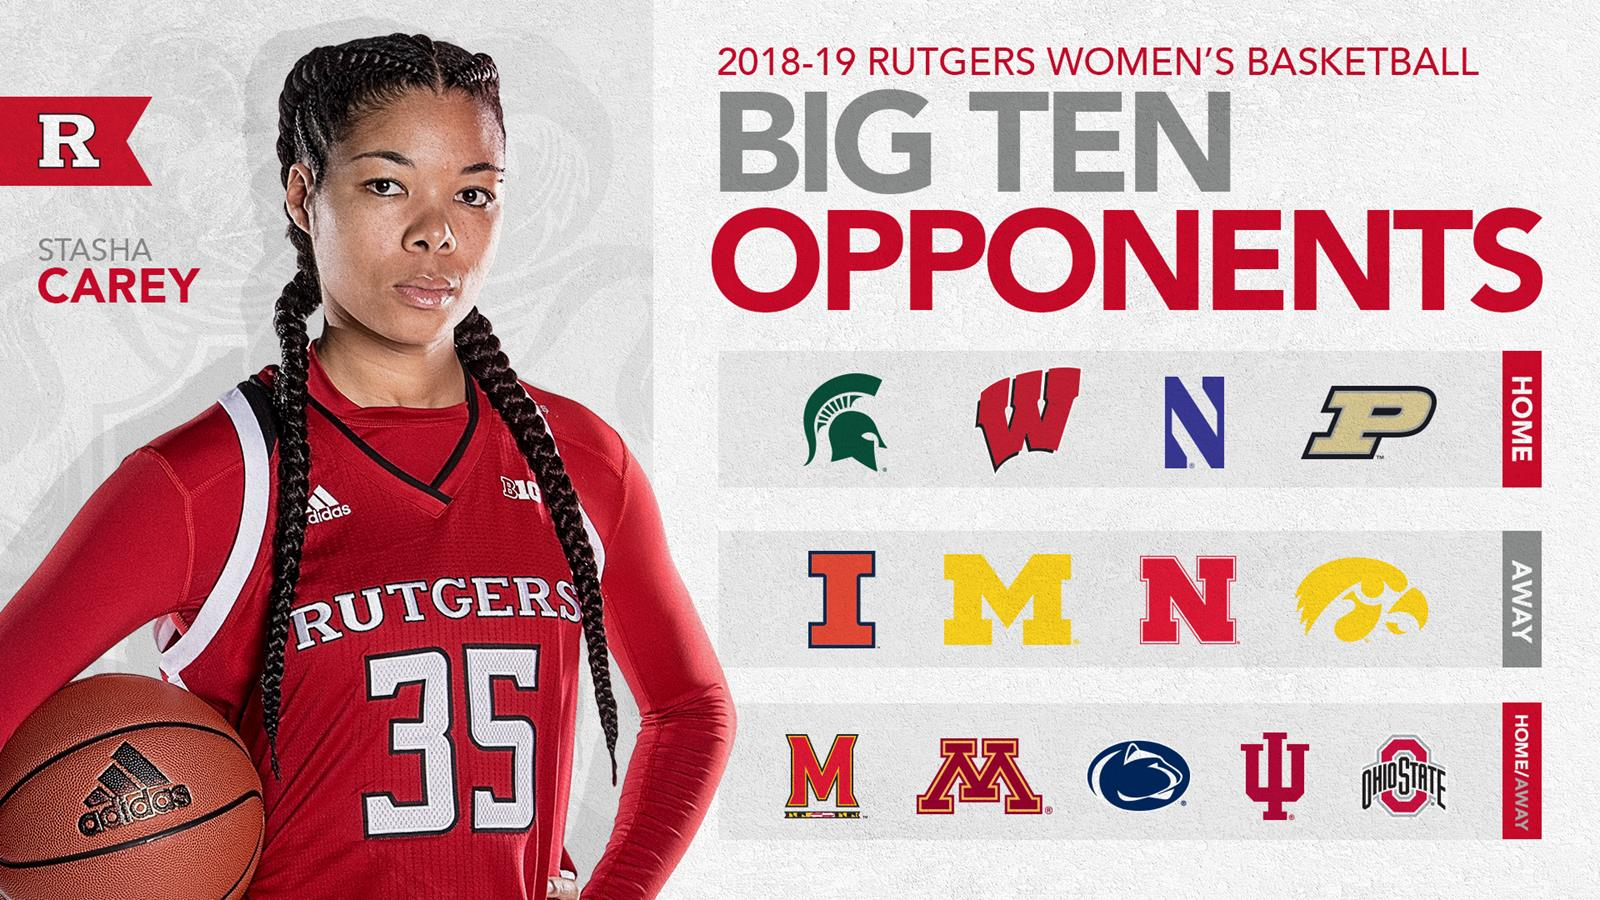 women's basketball announces 2018-19 b1g opponents - rutgers